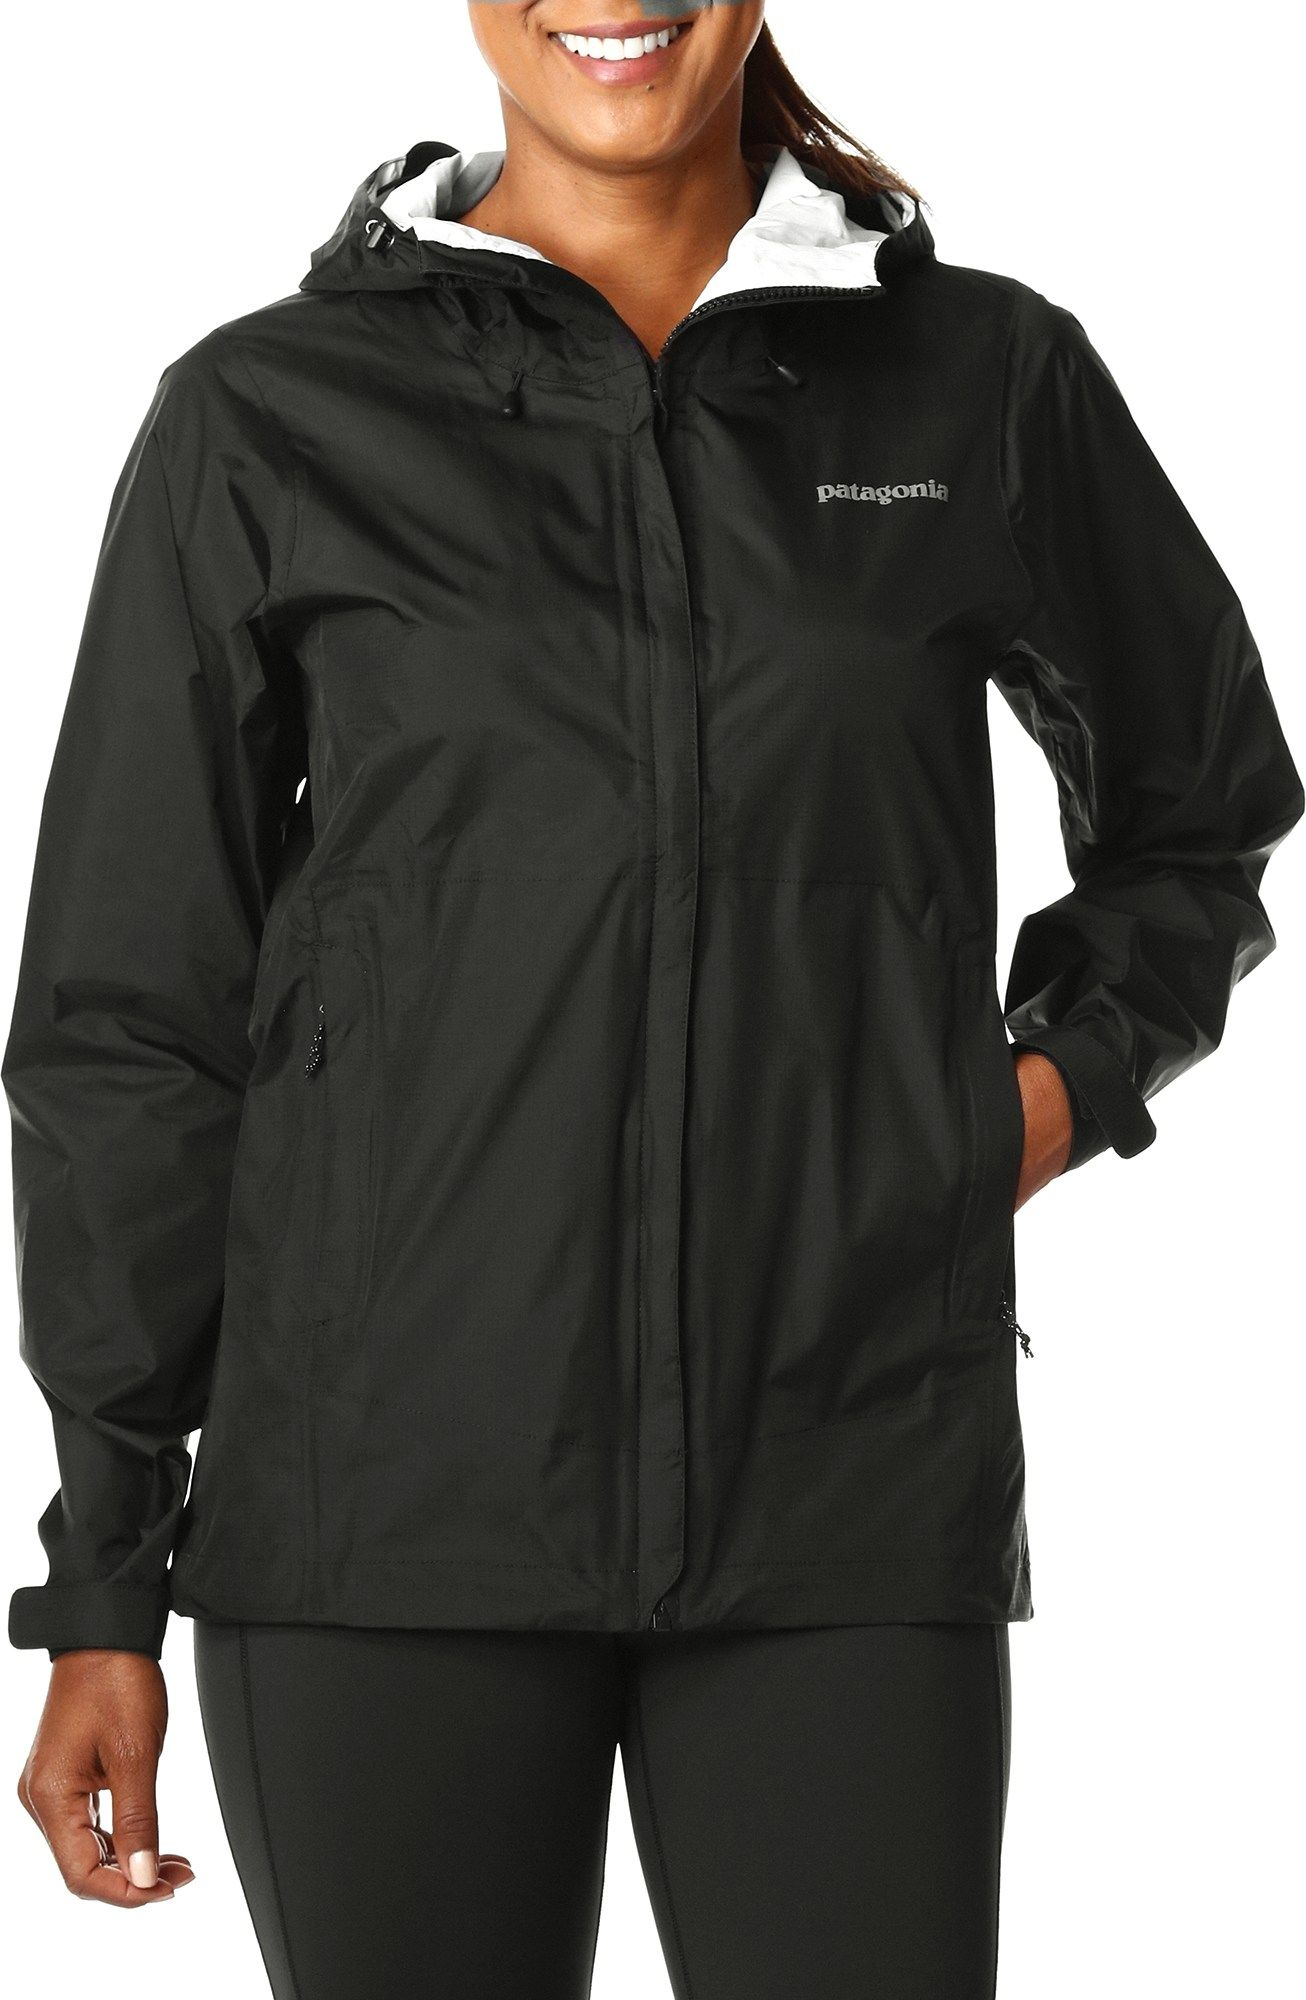 Patagonia Torrentshell Rain Jacket - Women's | REI Co-op ...